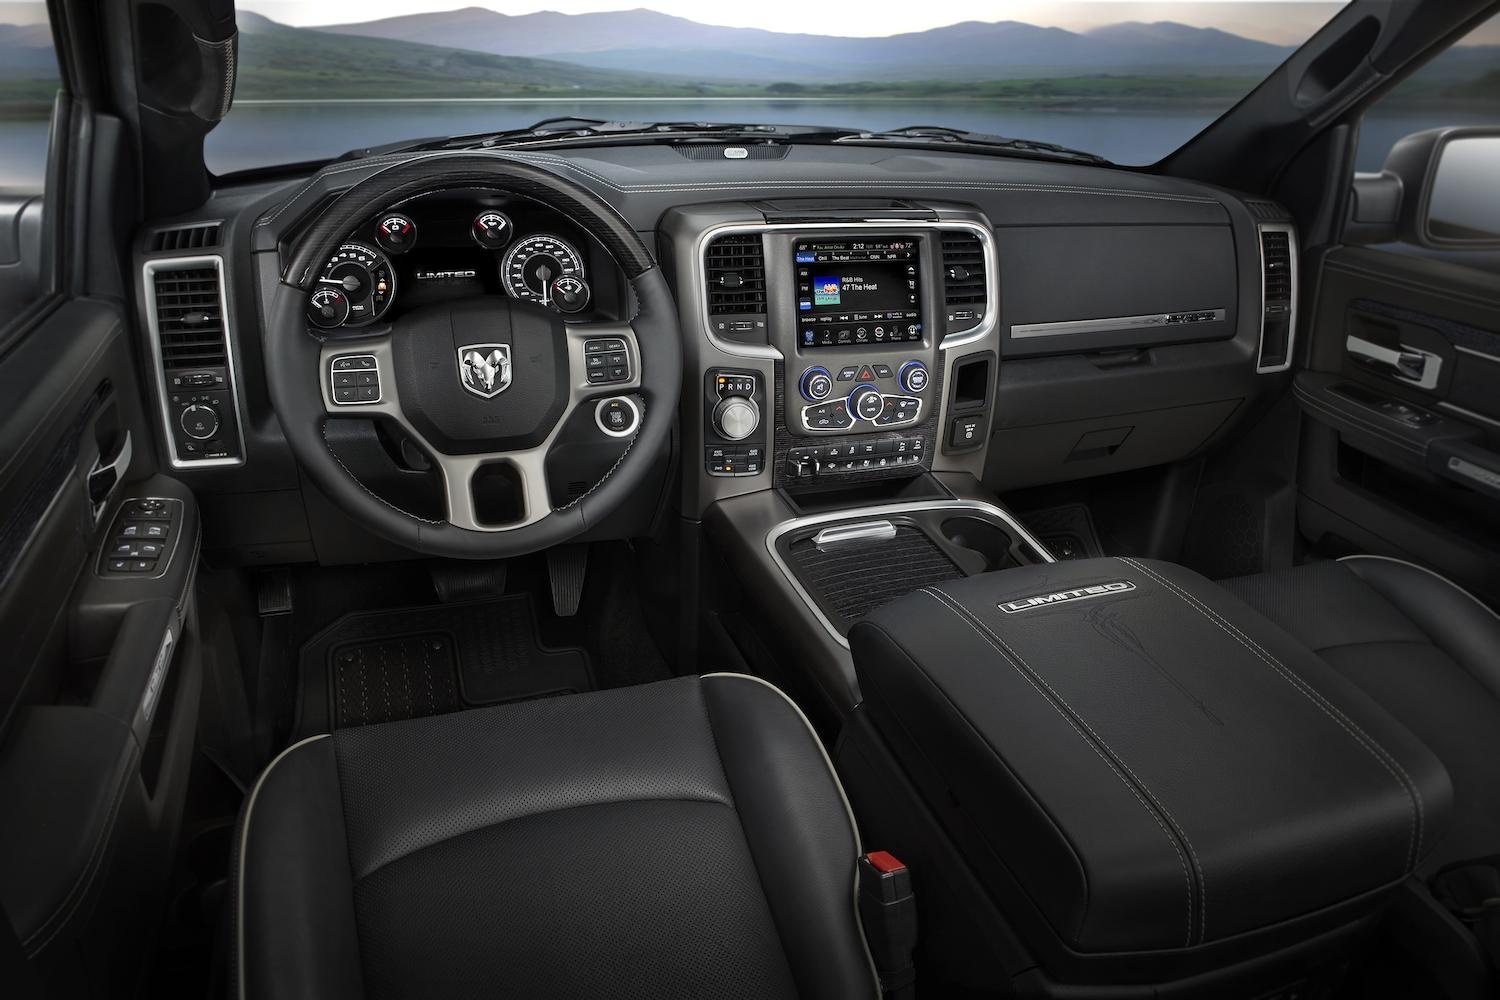 2015 Ram Laramie Limited interior